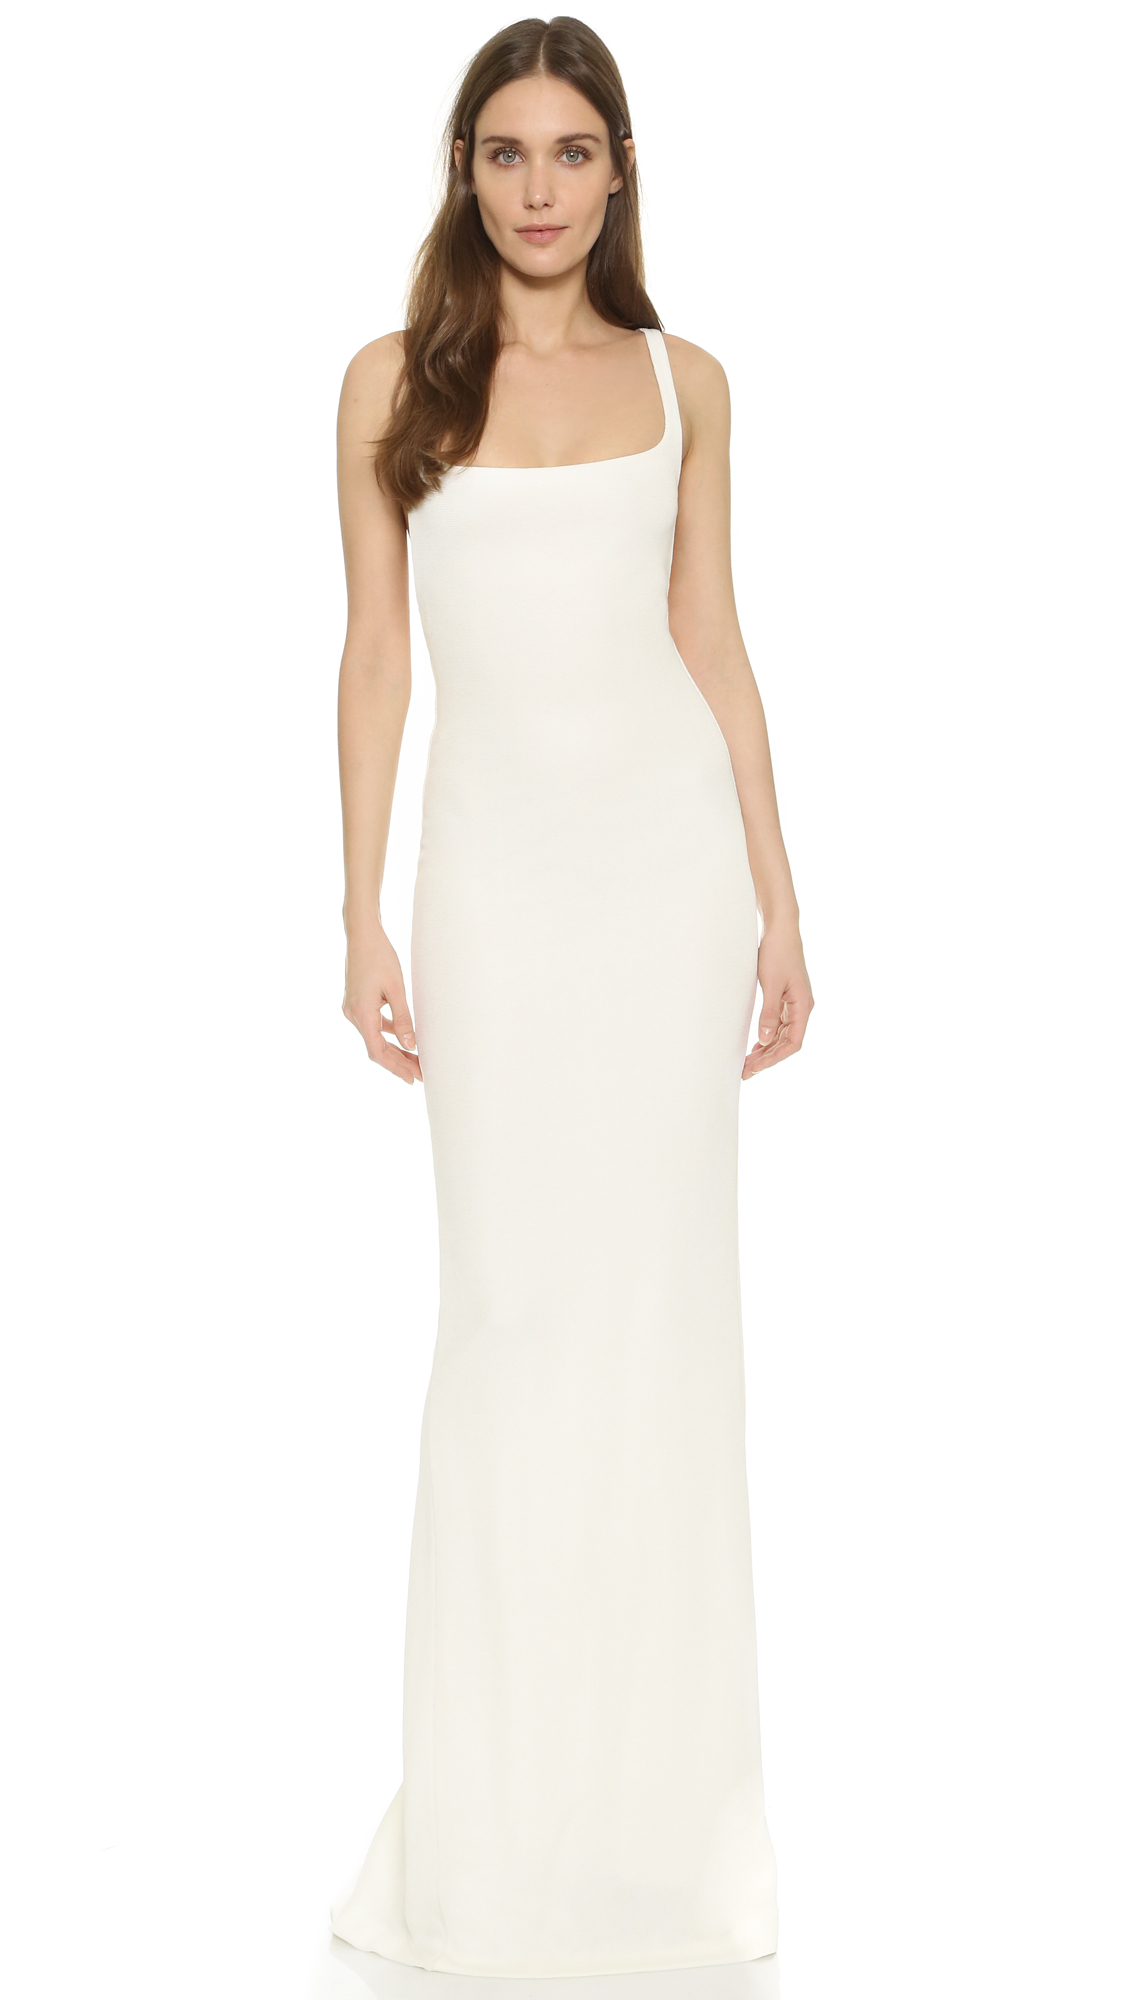 Lyst - Dsquared² Sleeveless Gown in White